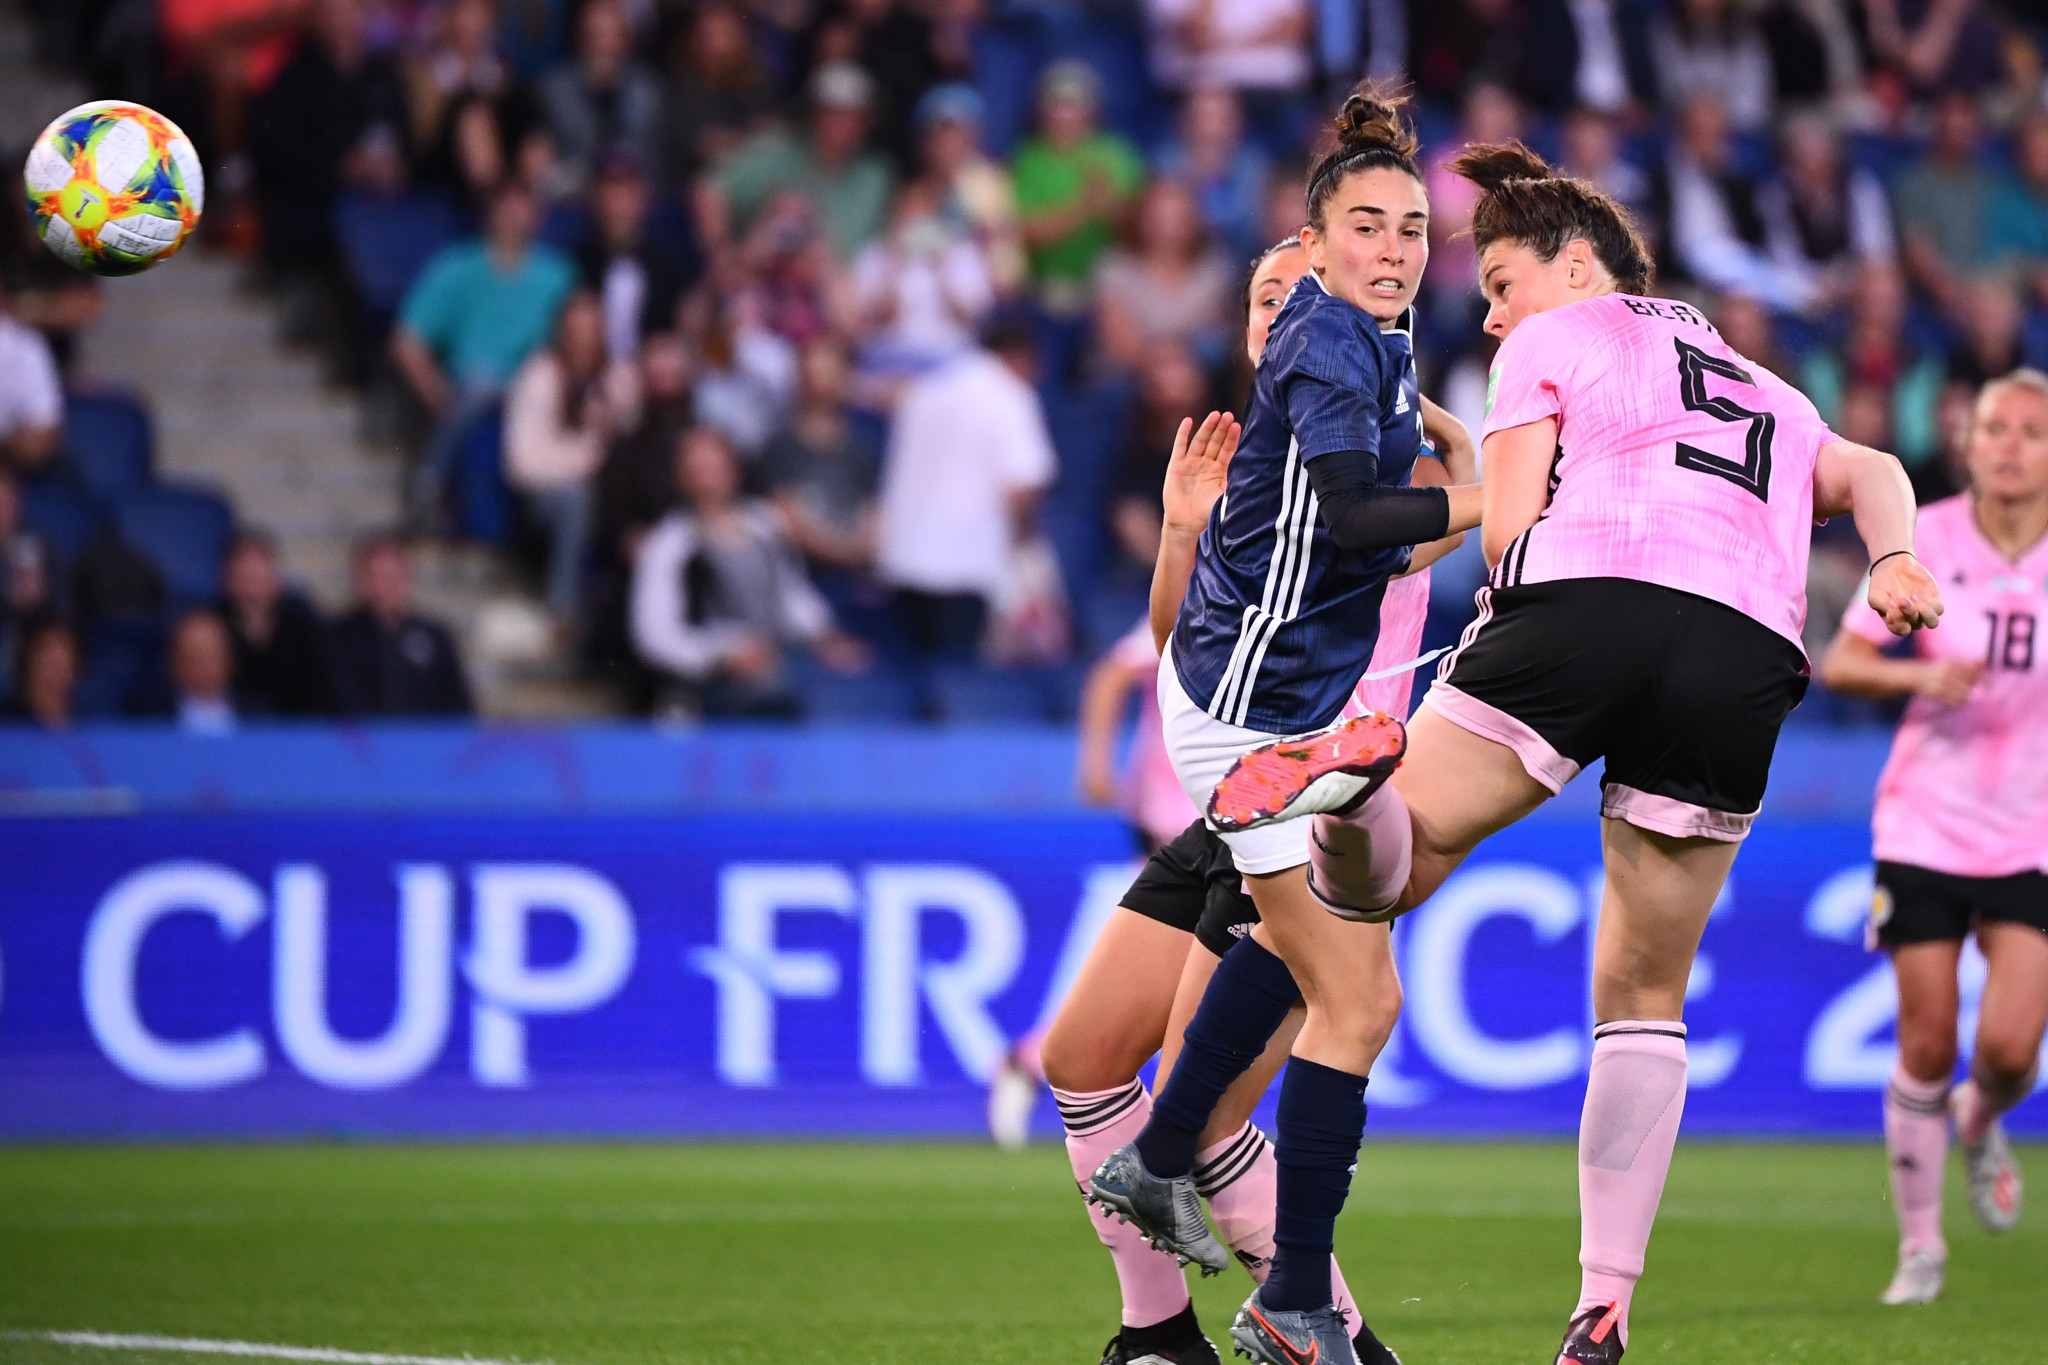 Jennifer Beattie made it 2-0 in the 49th minute ©Getty Images